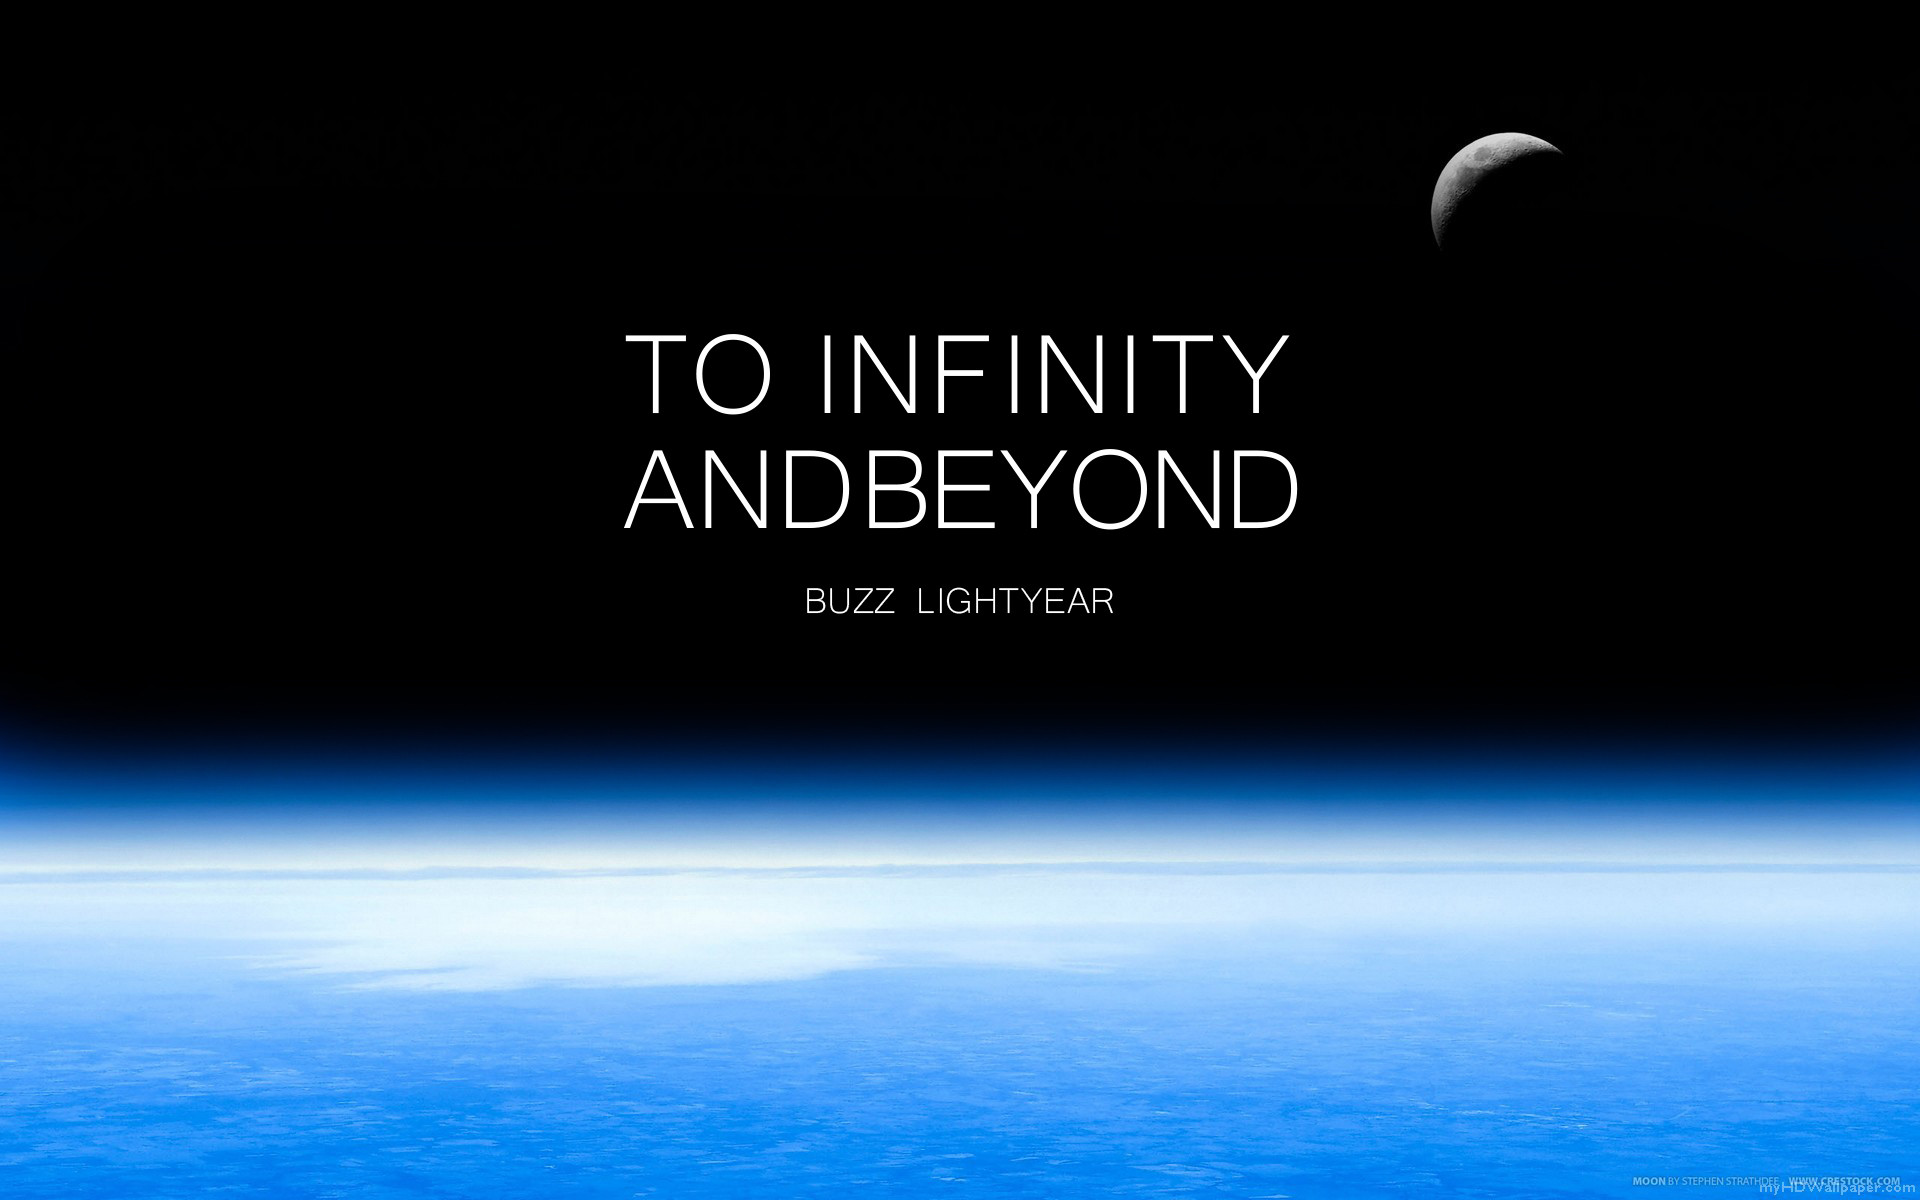 I Love You To Infinity And Beyond Wallpaper – Visit Chile